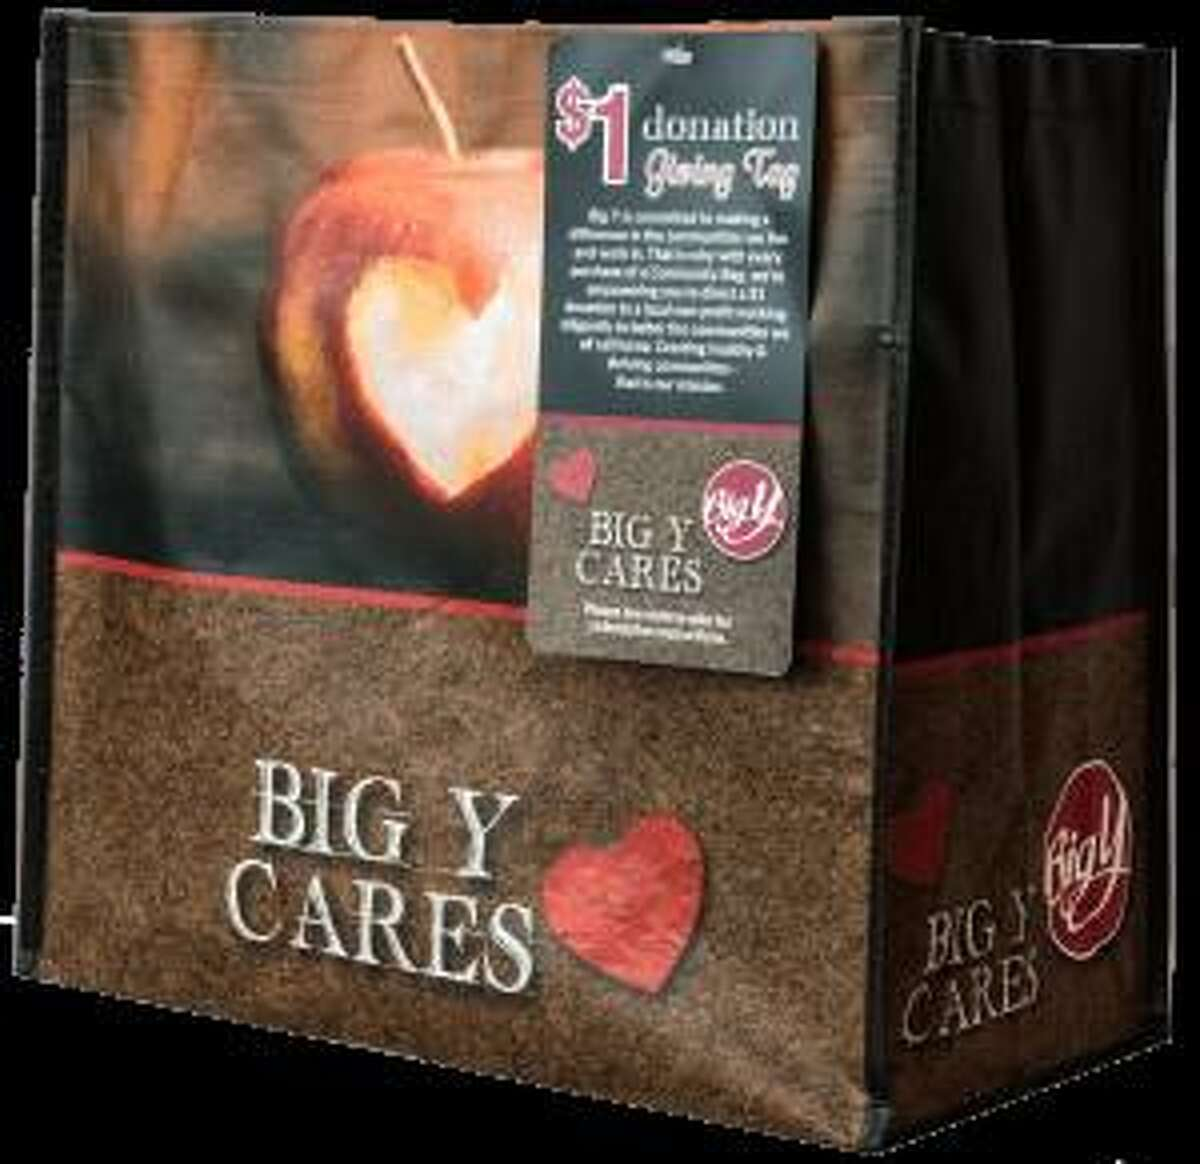 Some proceeds from sales of Big Y's shopping bag supports Charlotte Hungerford Hospital's Pink Rose Fund for breast cancer.